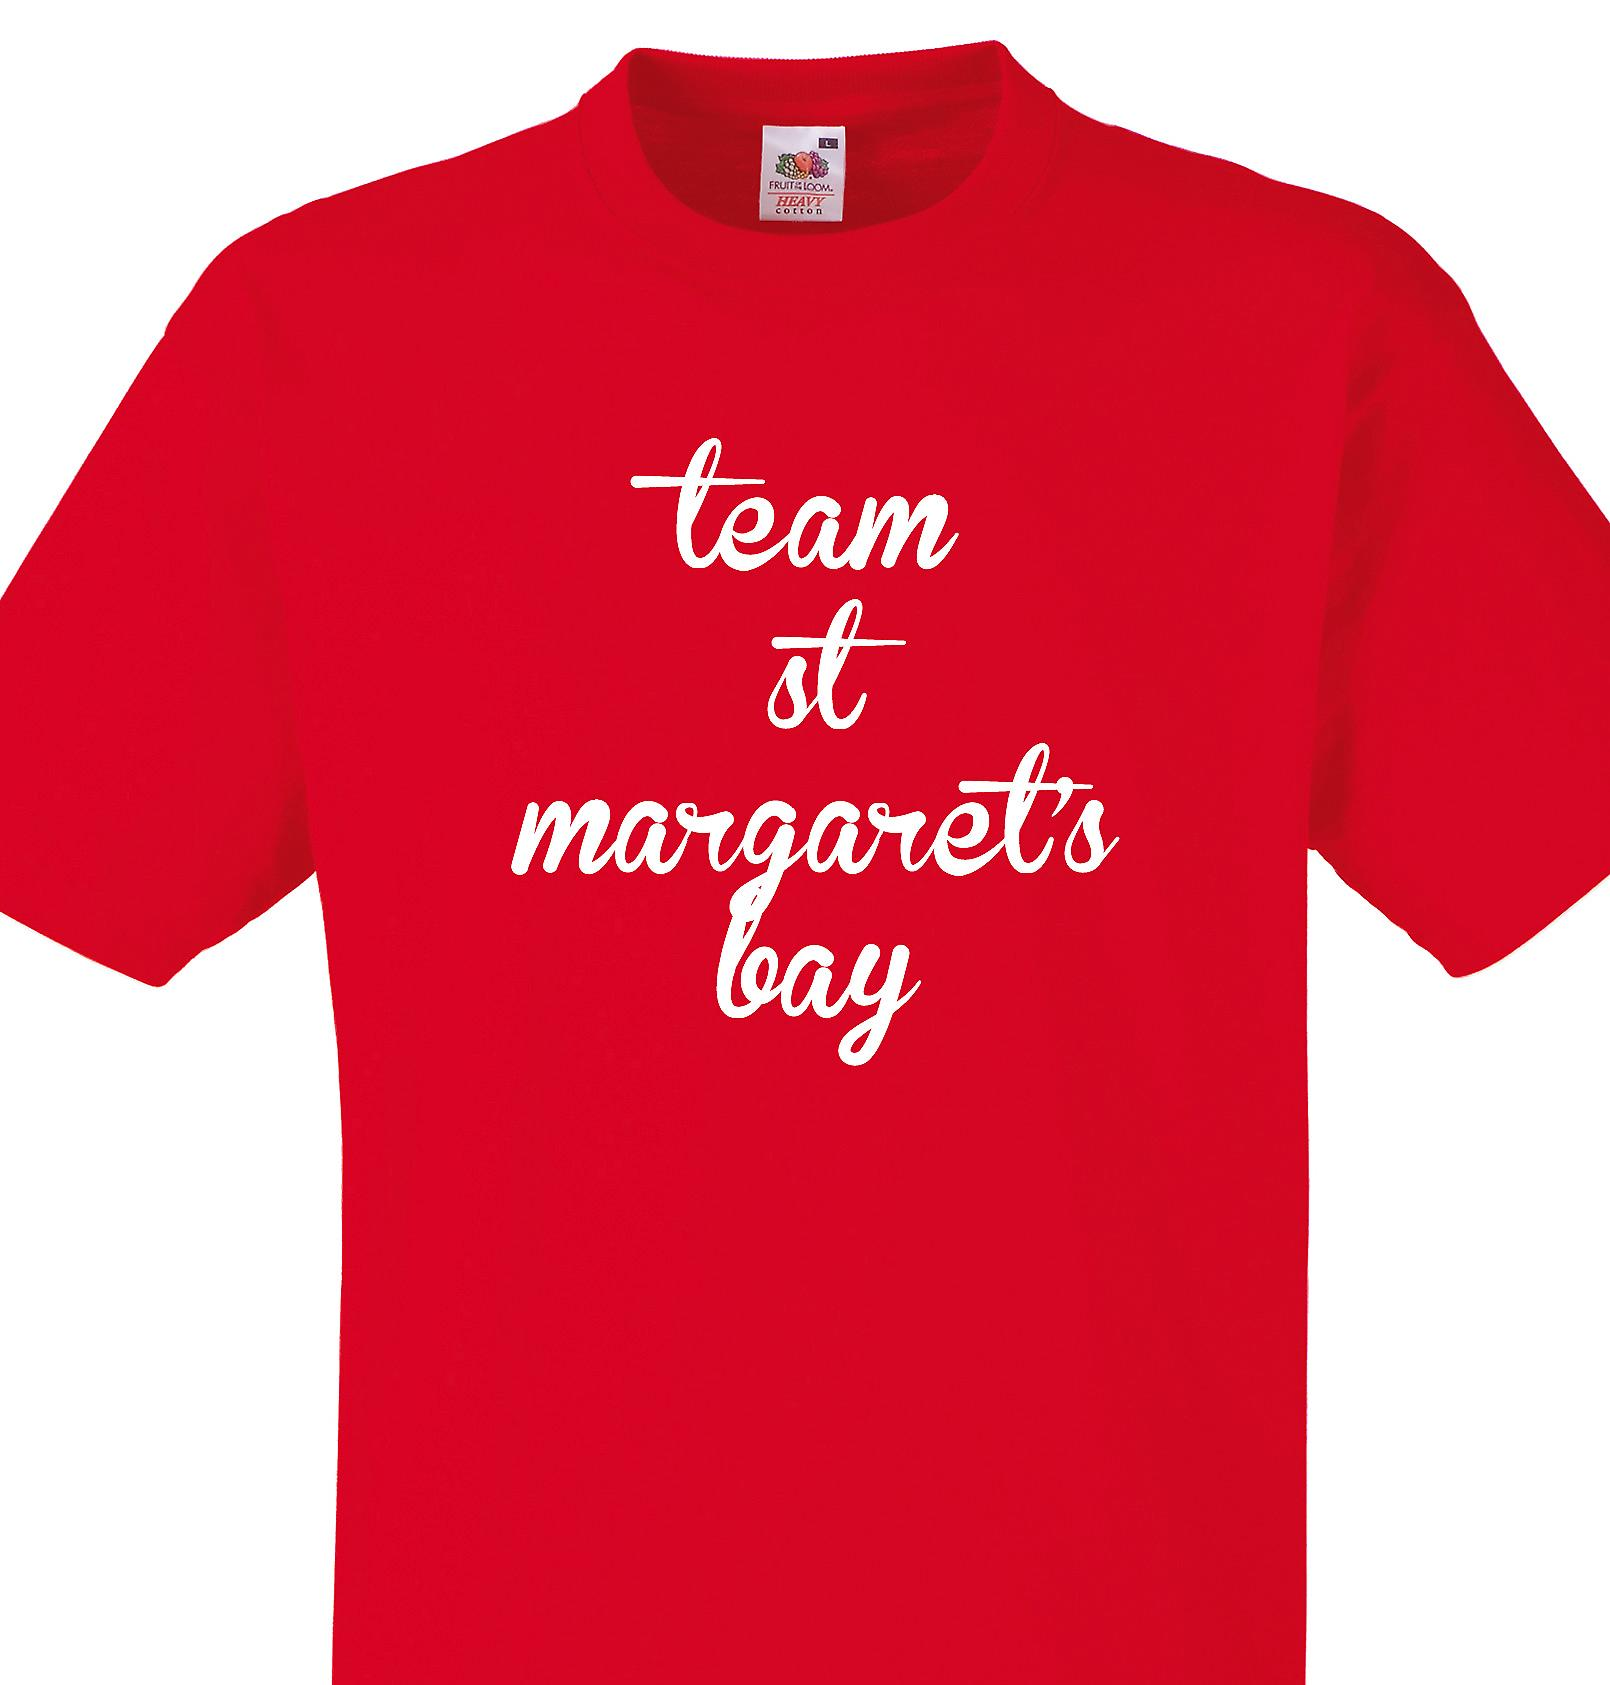 Team St margaret's bay Red T shirt